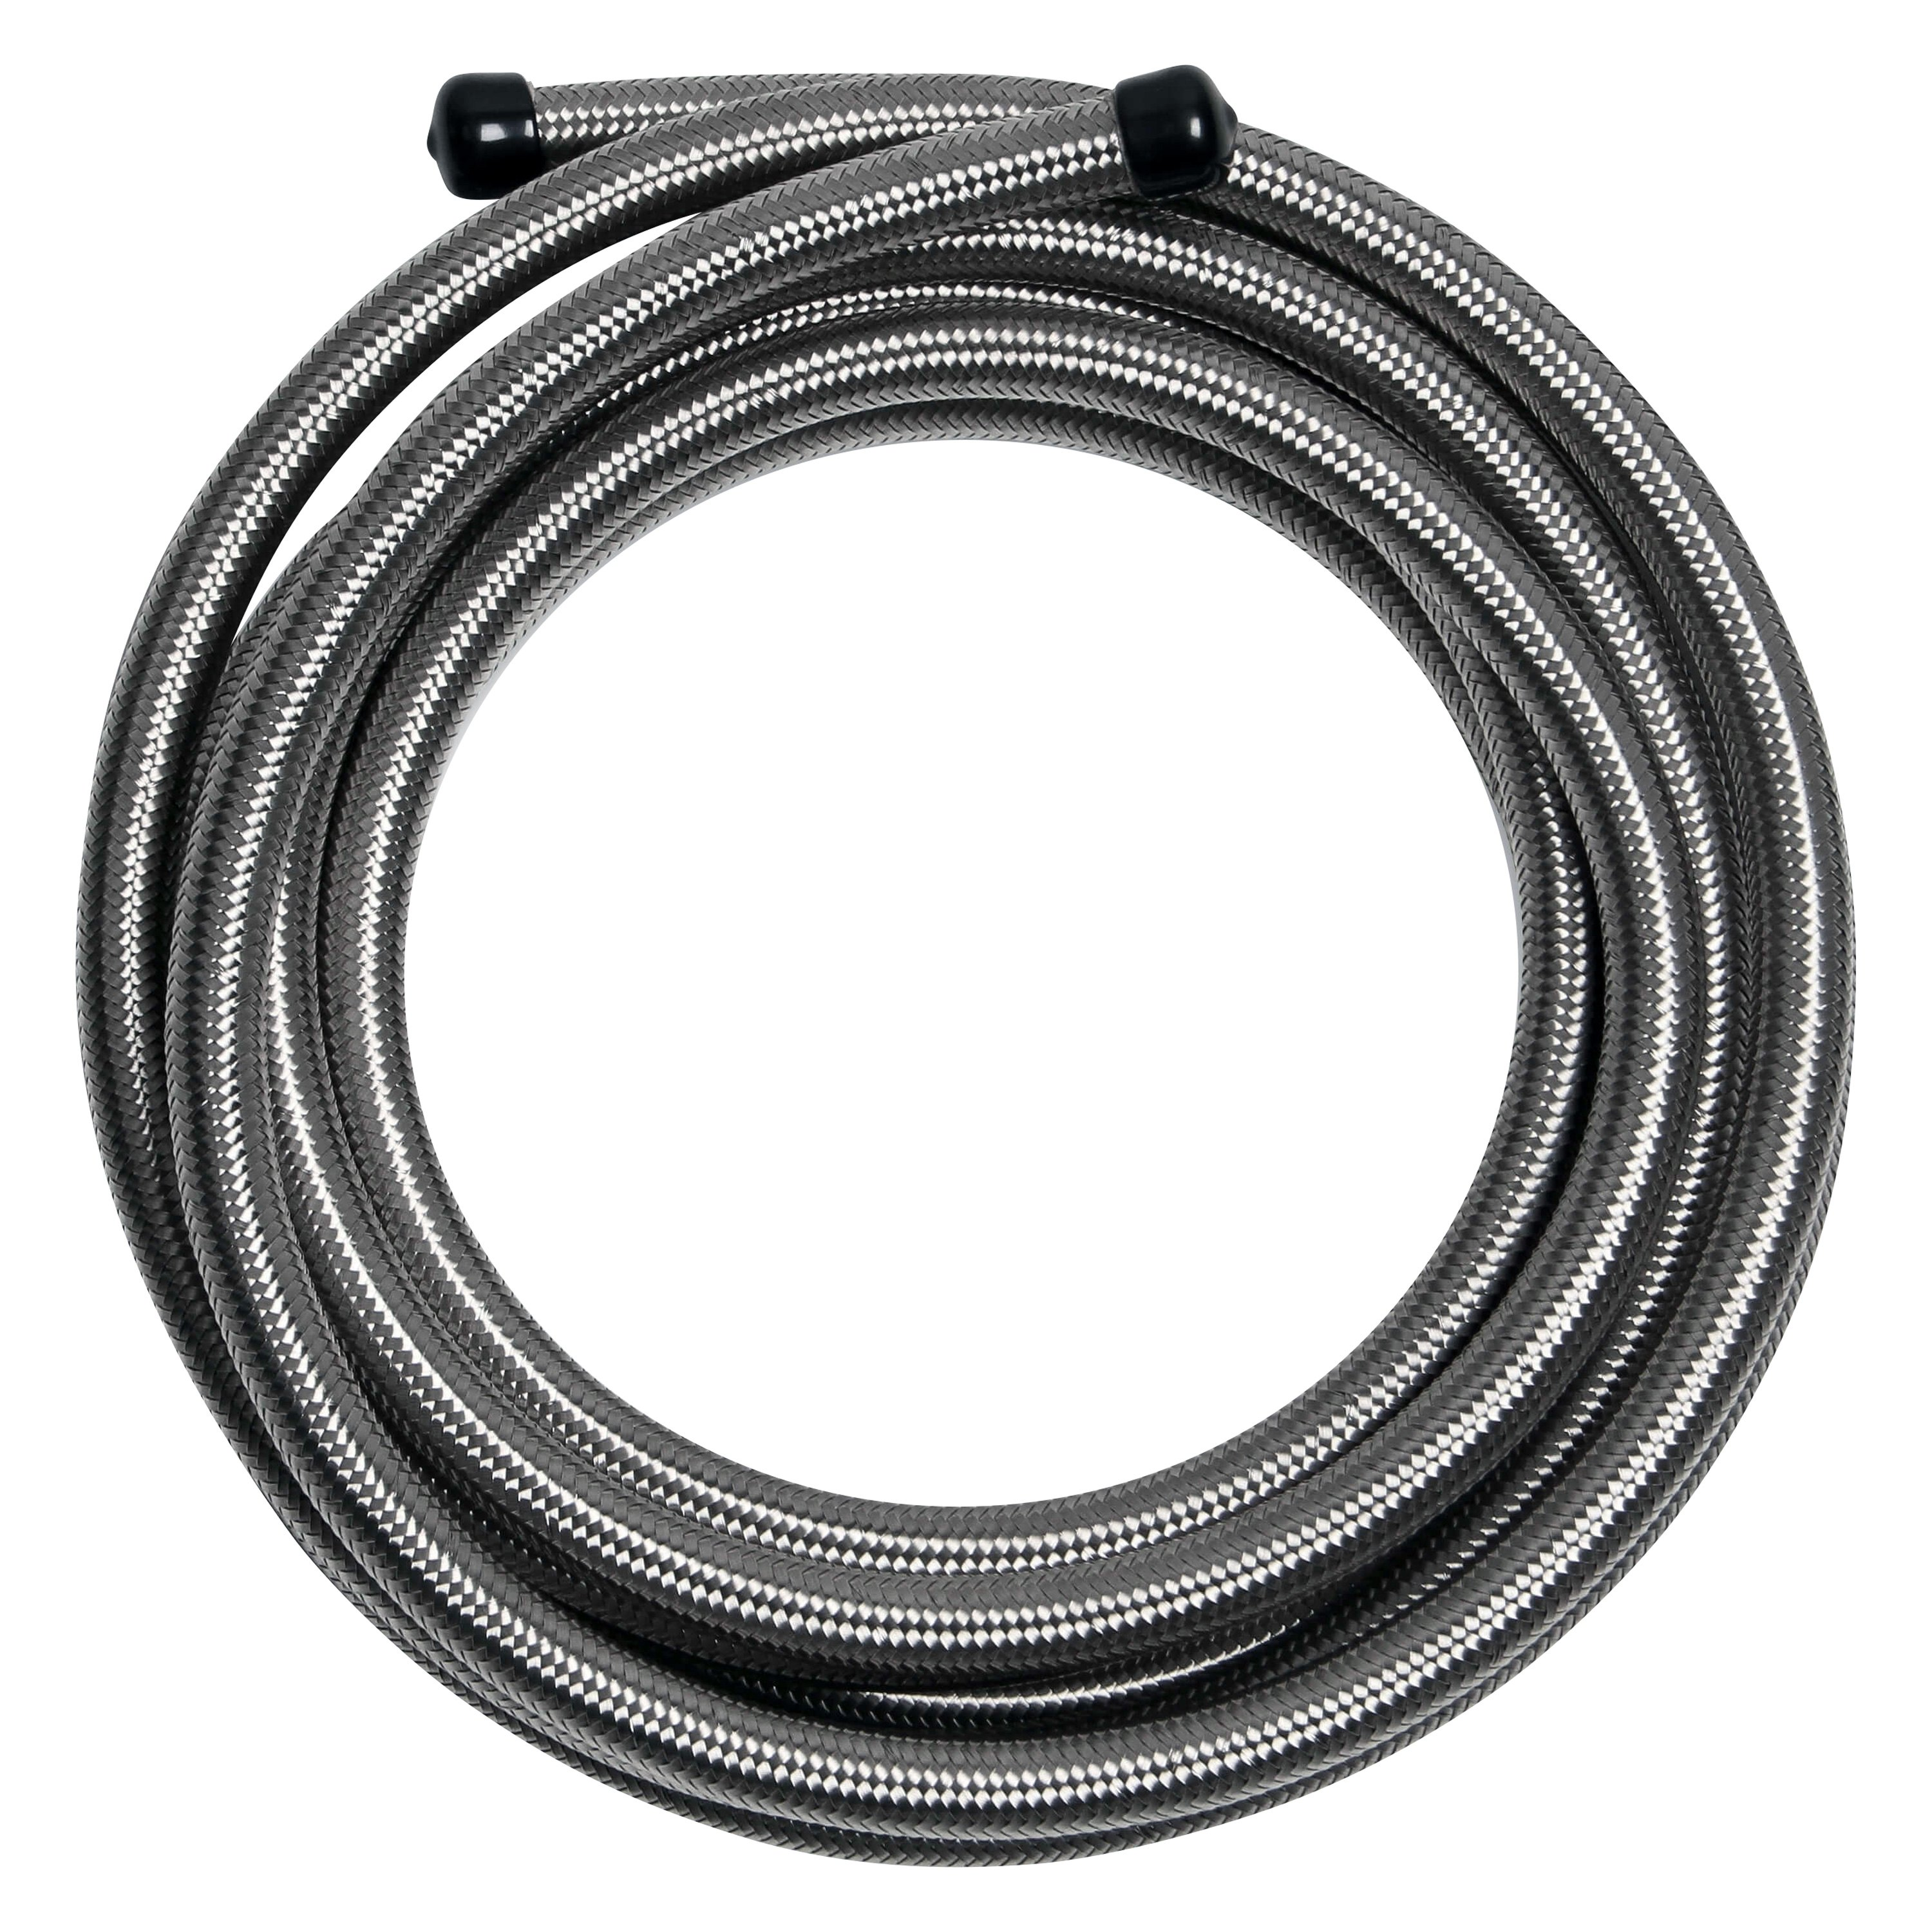 Sniper stainless steel braided hose